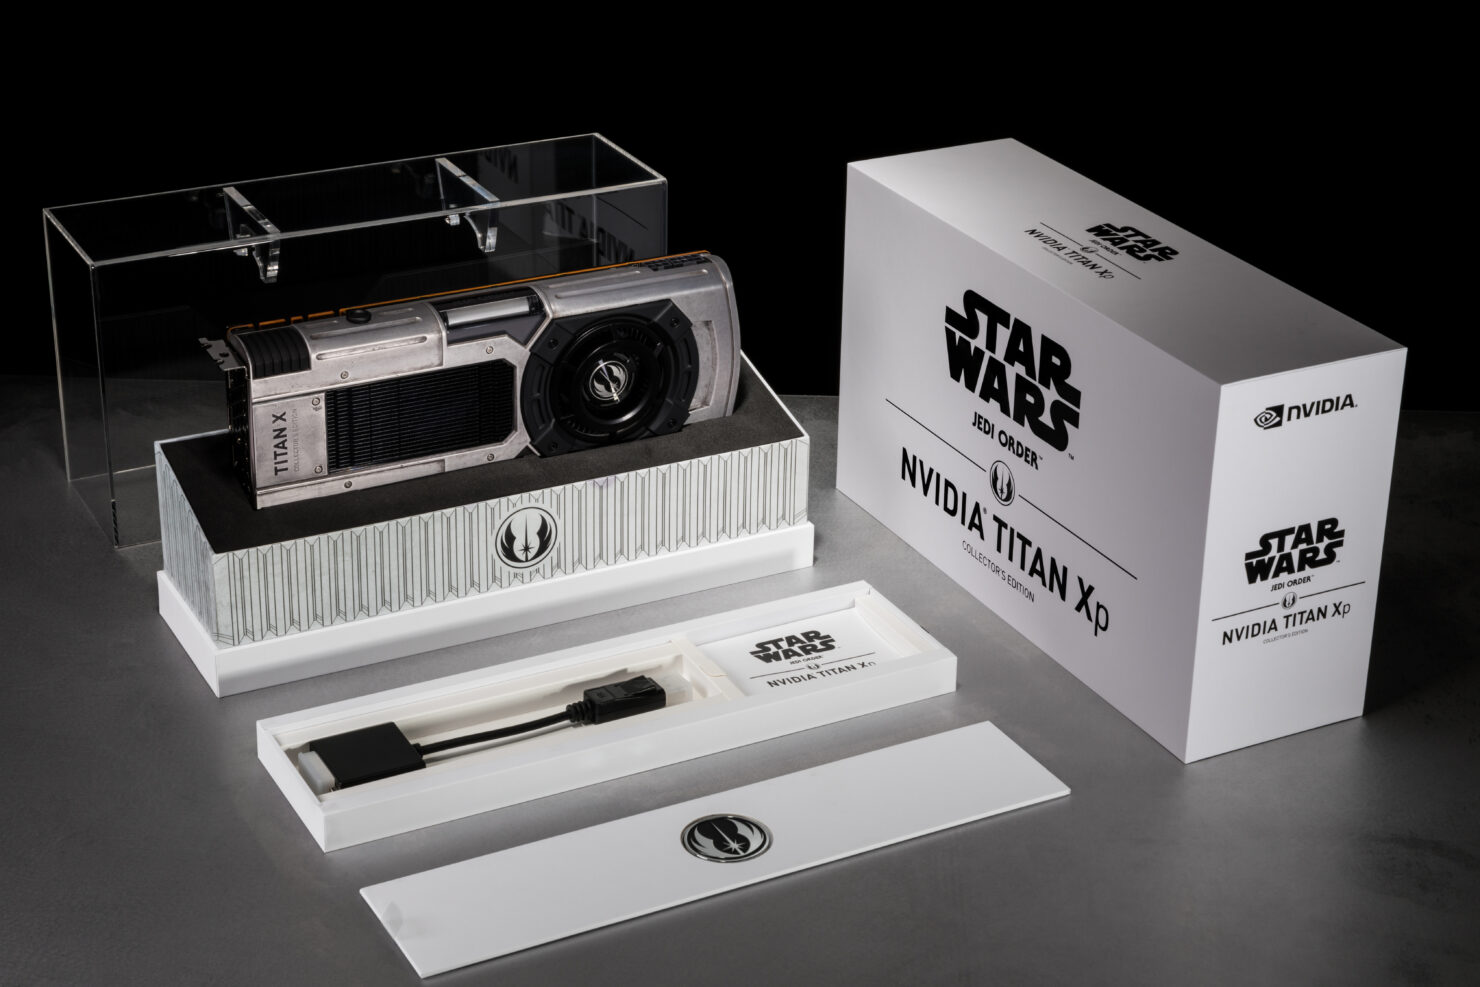 nvidia-geforce-titan-xp-star-wars-collectors-edition-jedi-order-packaging-photo-002